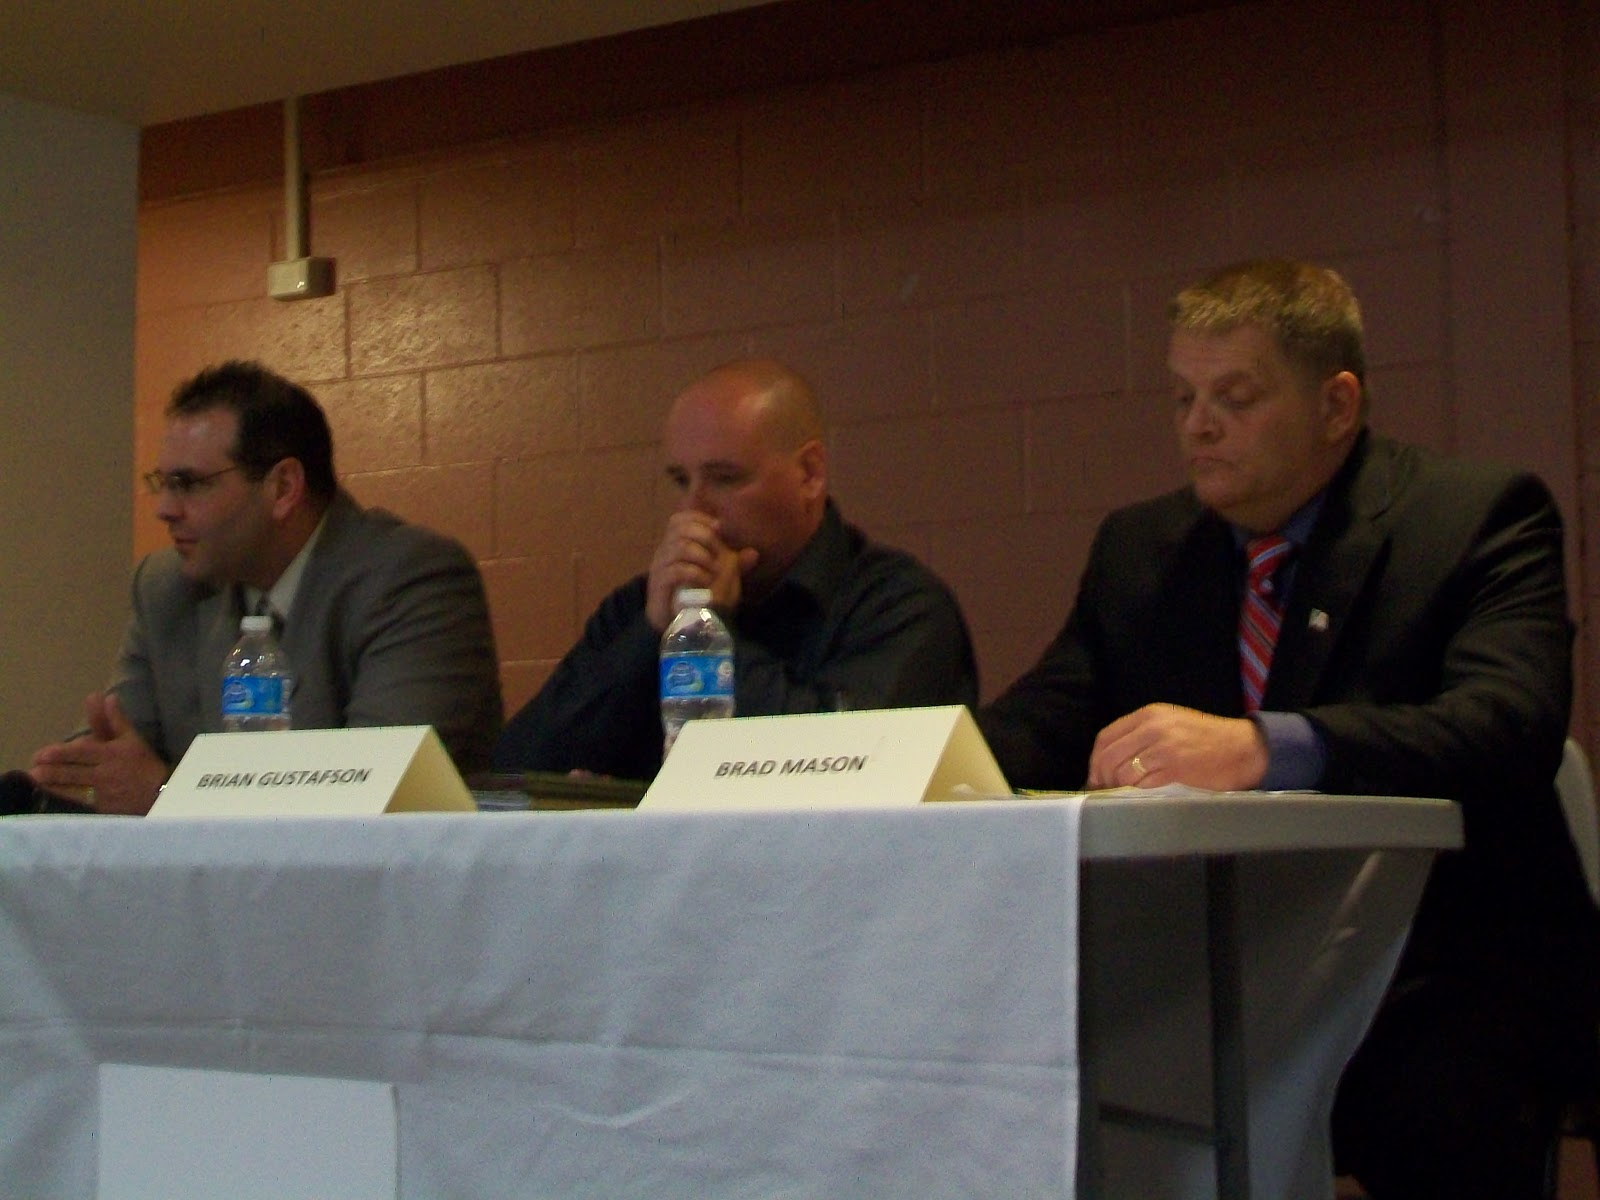 1490 newsblog 2013 04 14 candidates for mckean county sheriff and bradford city council participated in a forum thursday night at the bradford area public library sponsored by the